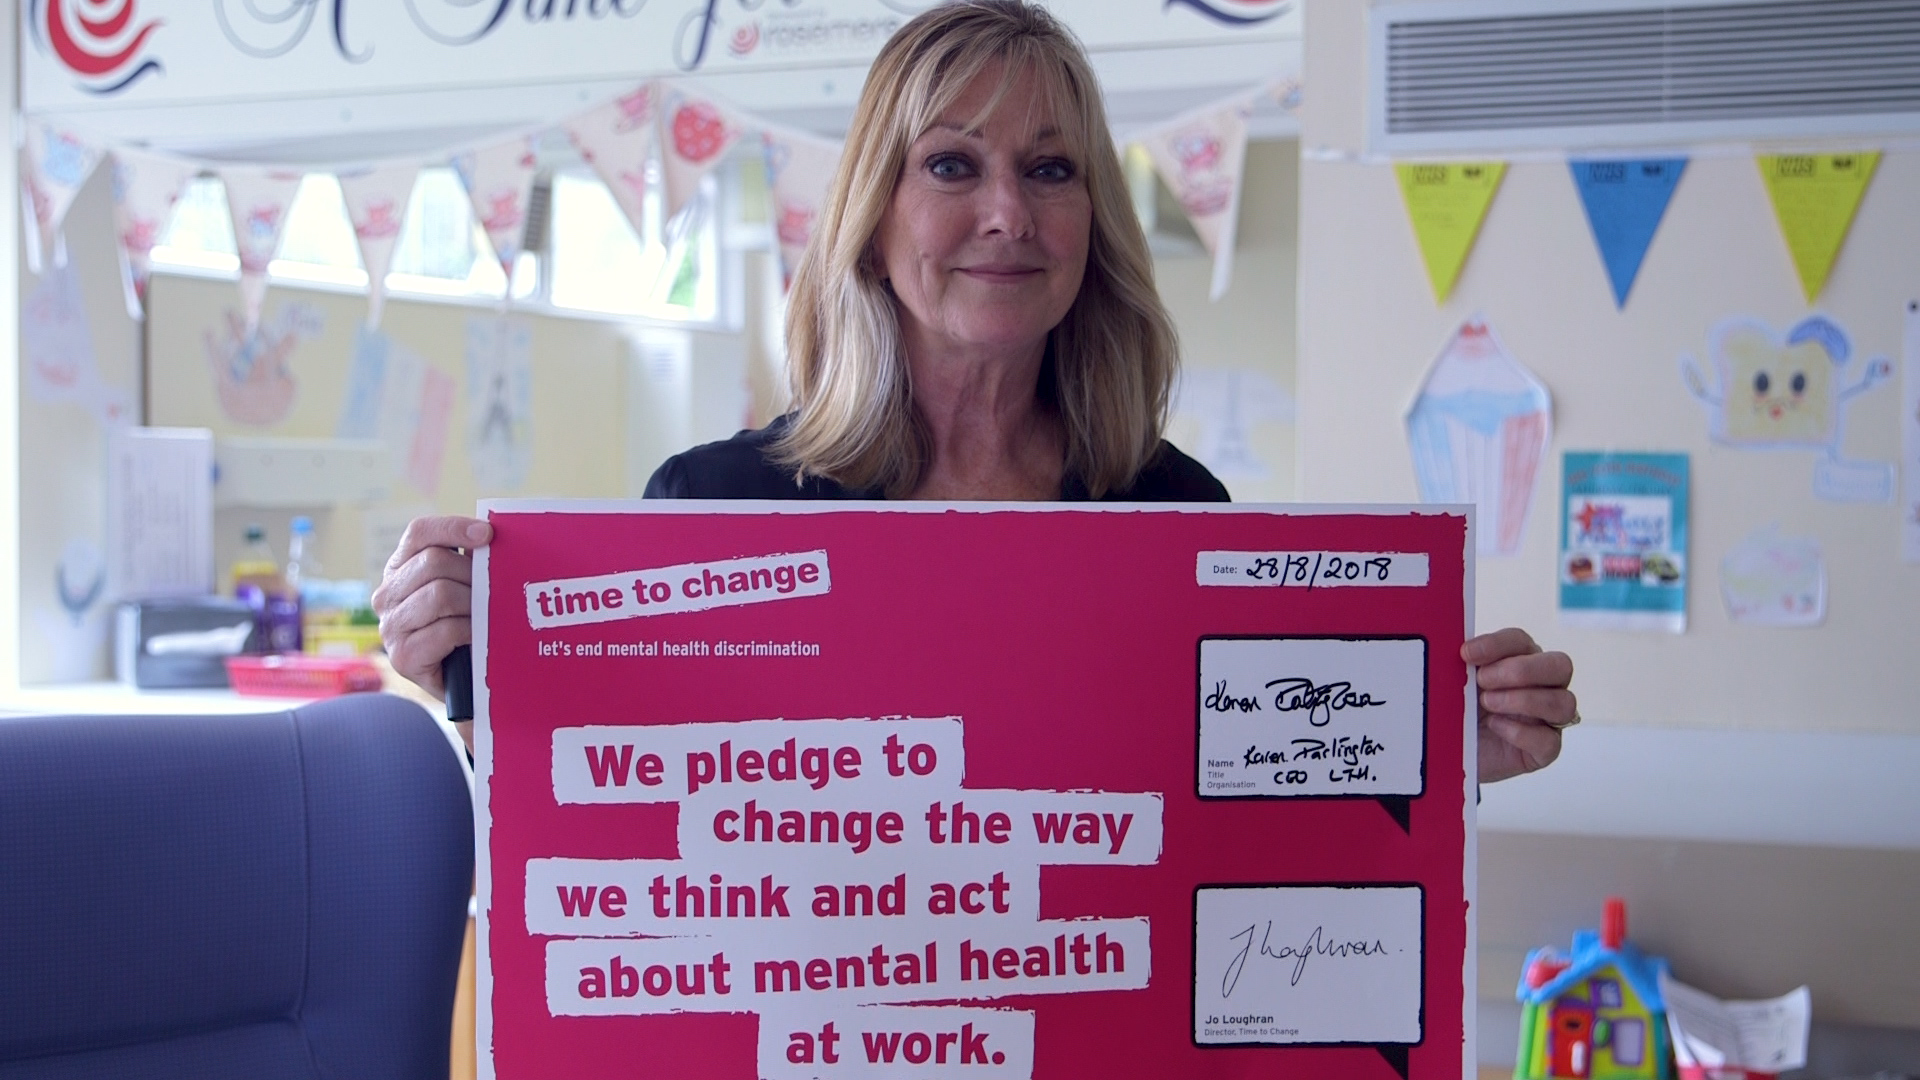 Chief Executive with pledge